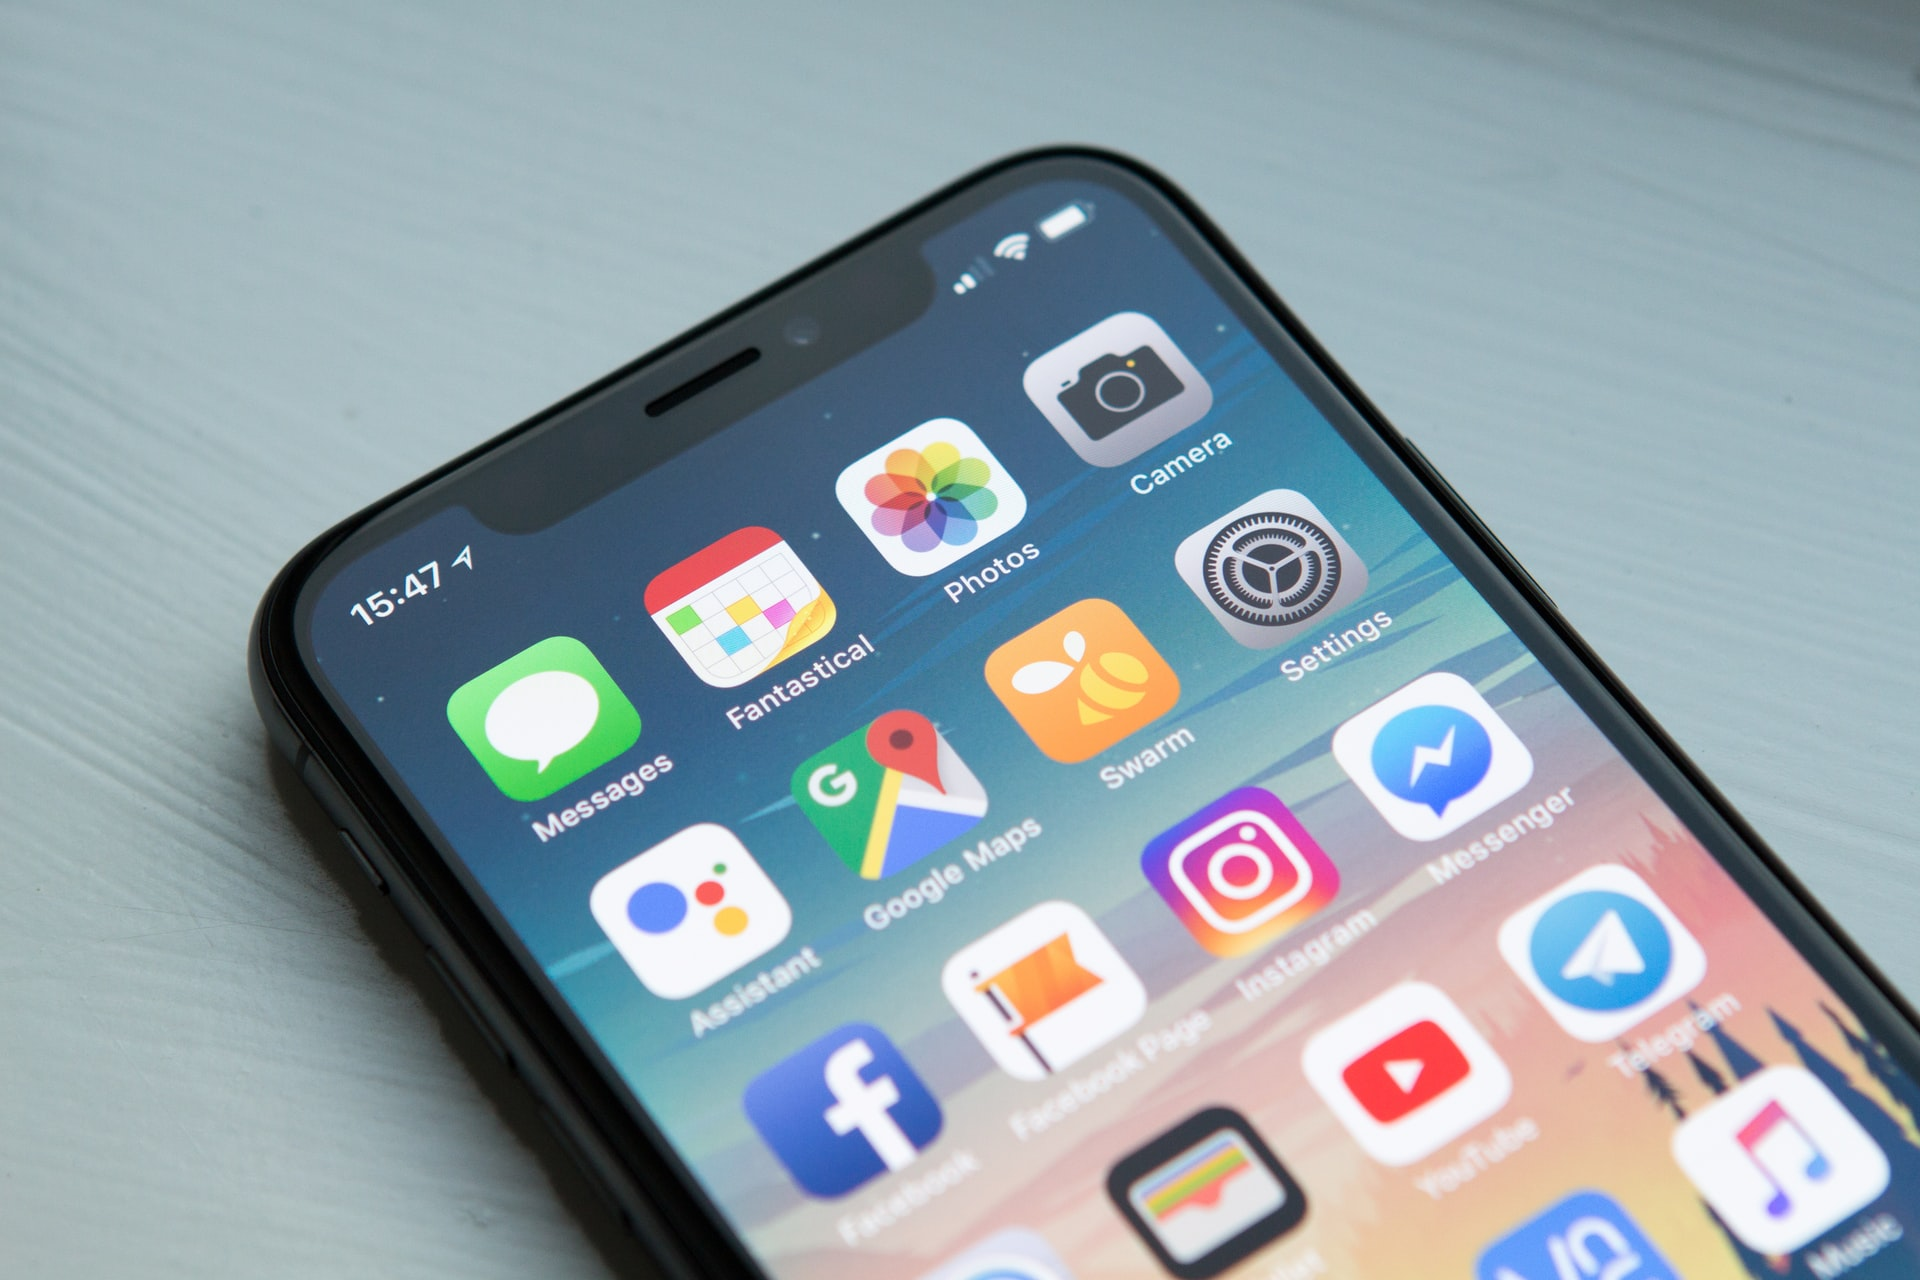 Check Out These Free Apps To Help You Become More Productive